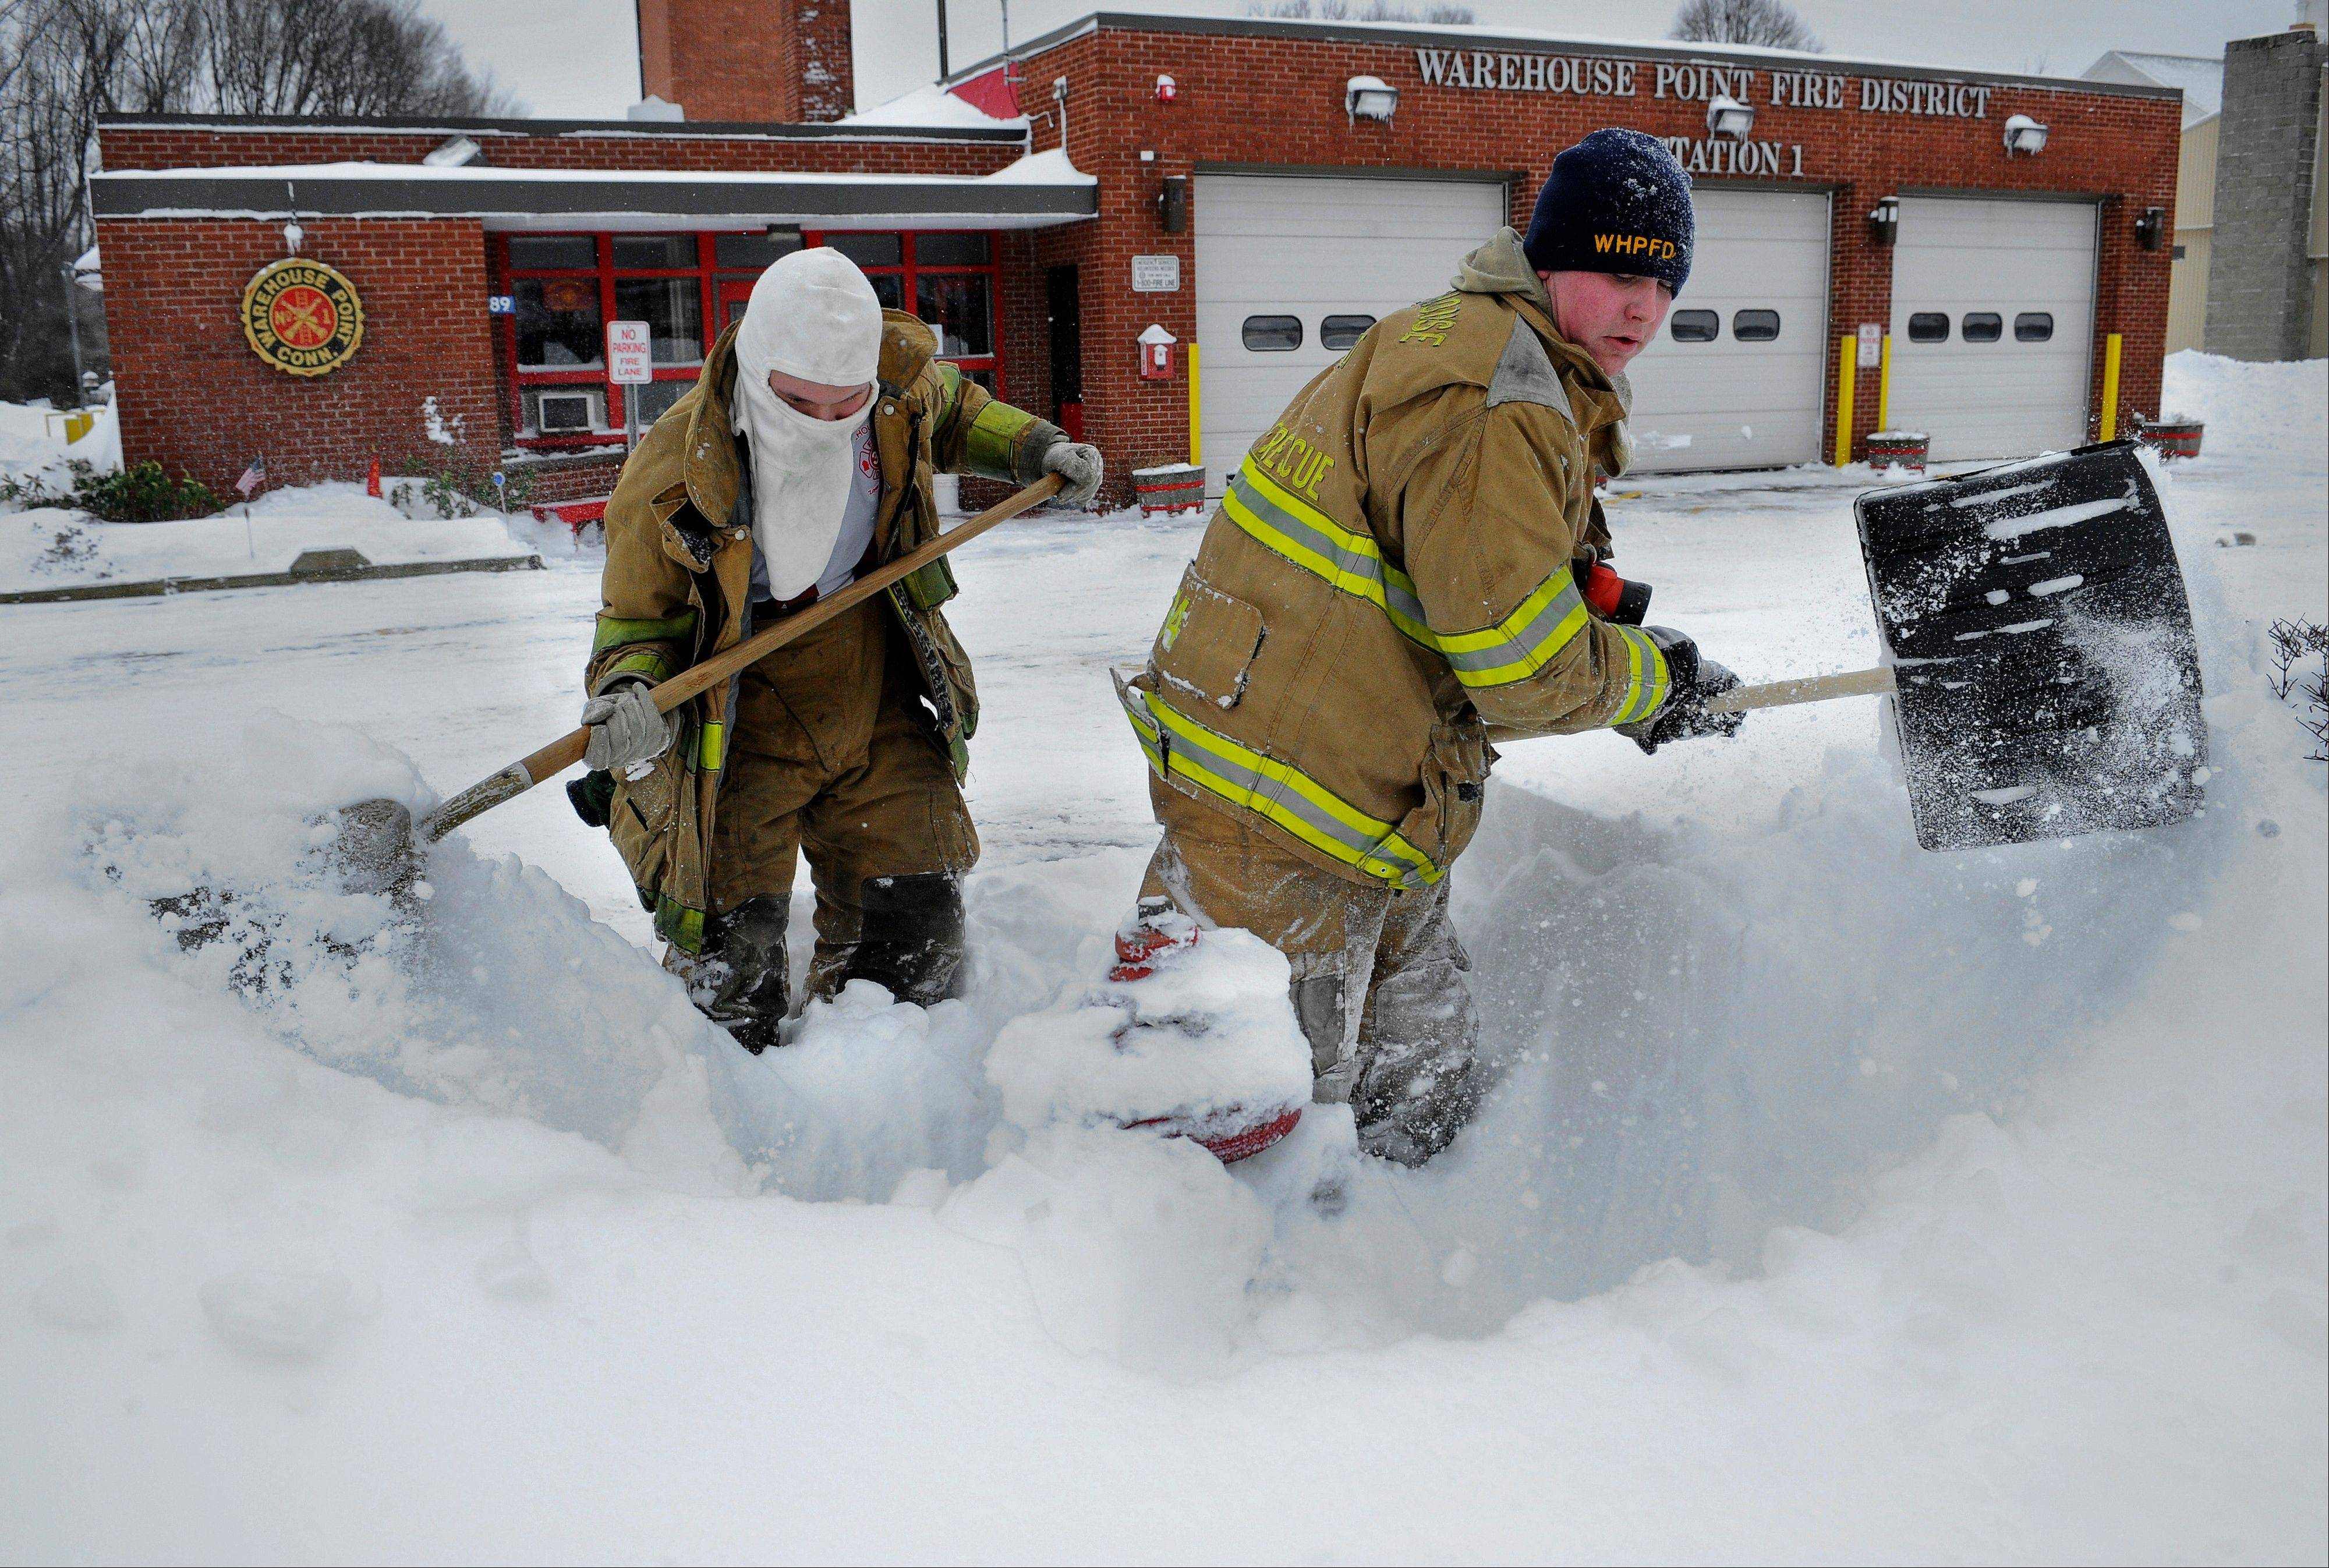 Junior firefighter Adam Krach, left, and firefighter Steve Ellis of the Warehouse Point Fire Department dig snow from a hydrant outside their station in East Windsor, Conn. on Saturday, Feb. 9, 2013. A behemoth storm packing hurricane-force wind gusts and blizzard conditions swept through the Northeast overnight.